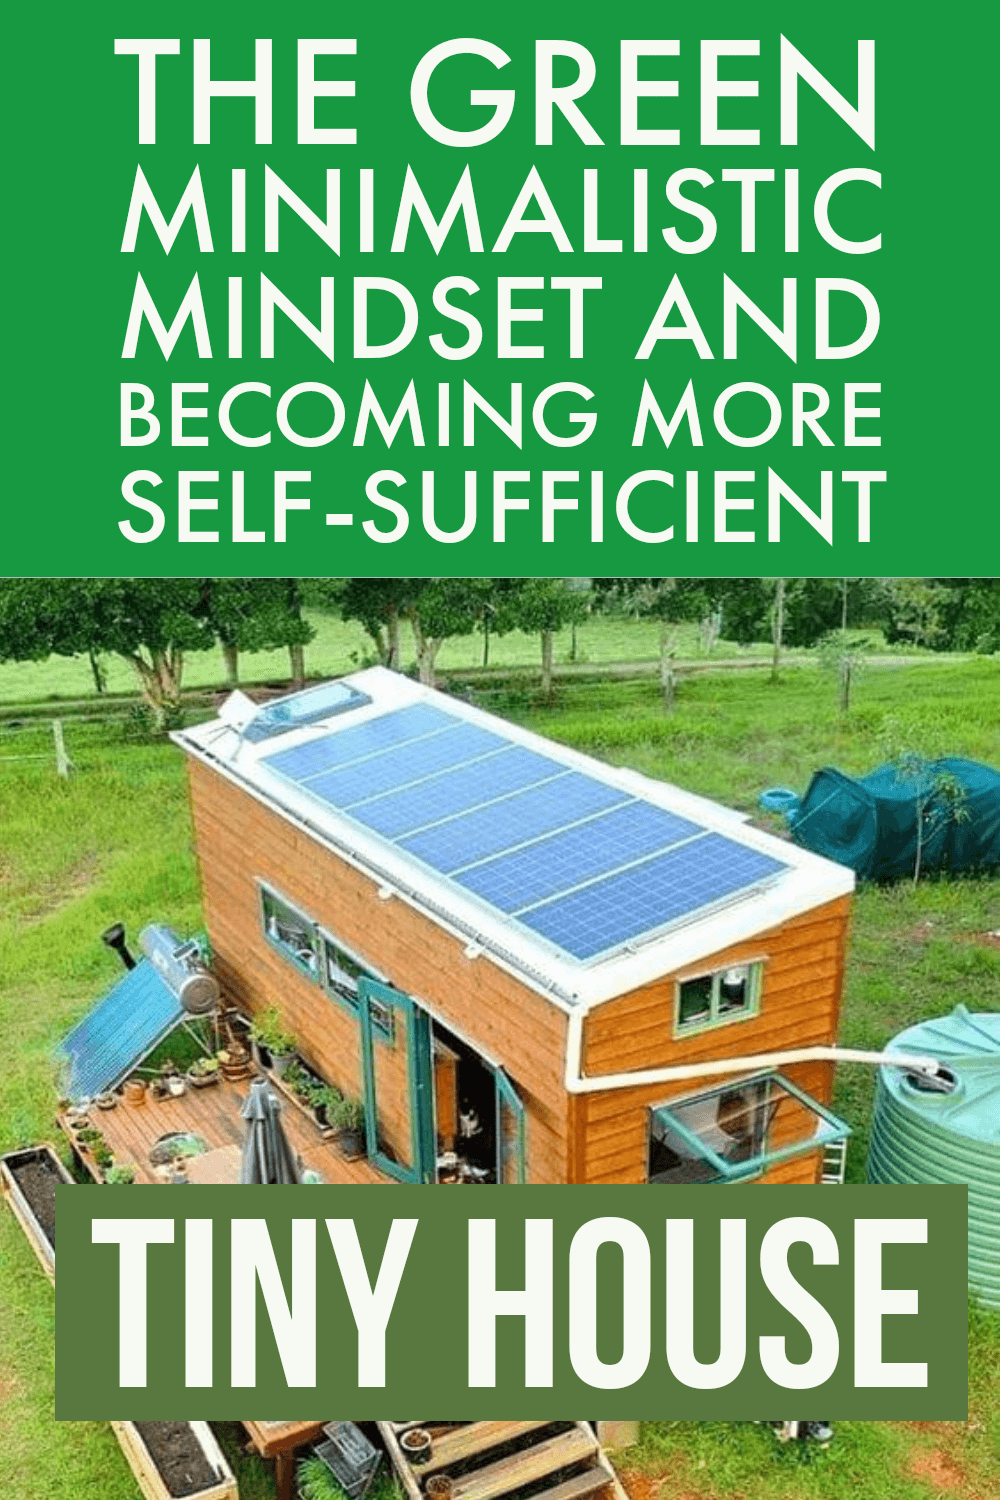 Tiny House : The Green Minimalistic Mindset and Become More Self-Sufficient